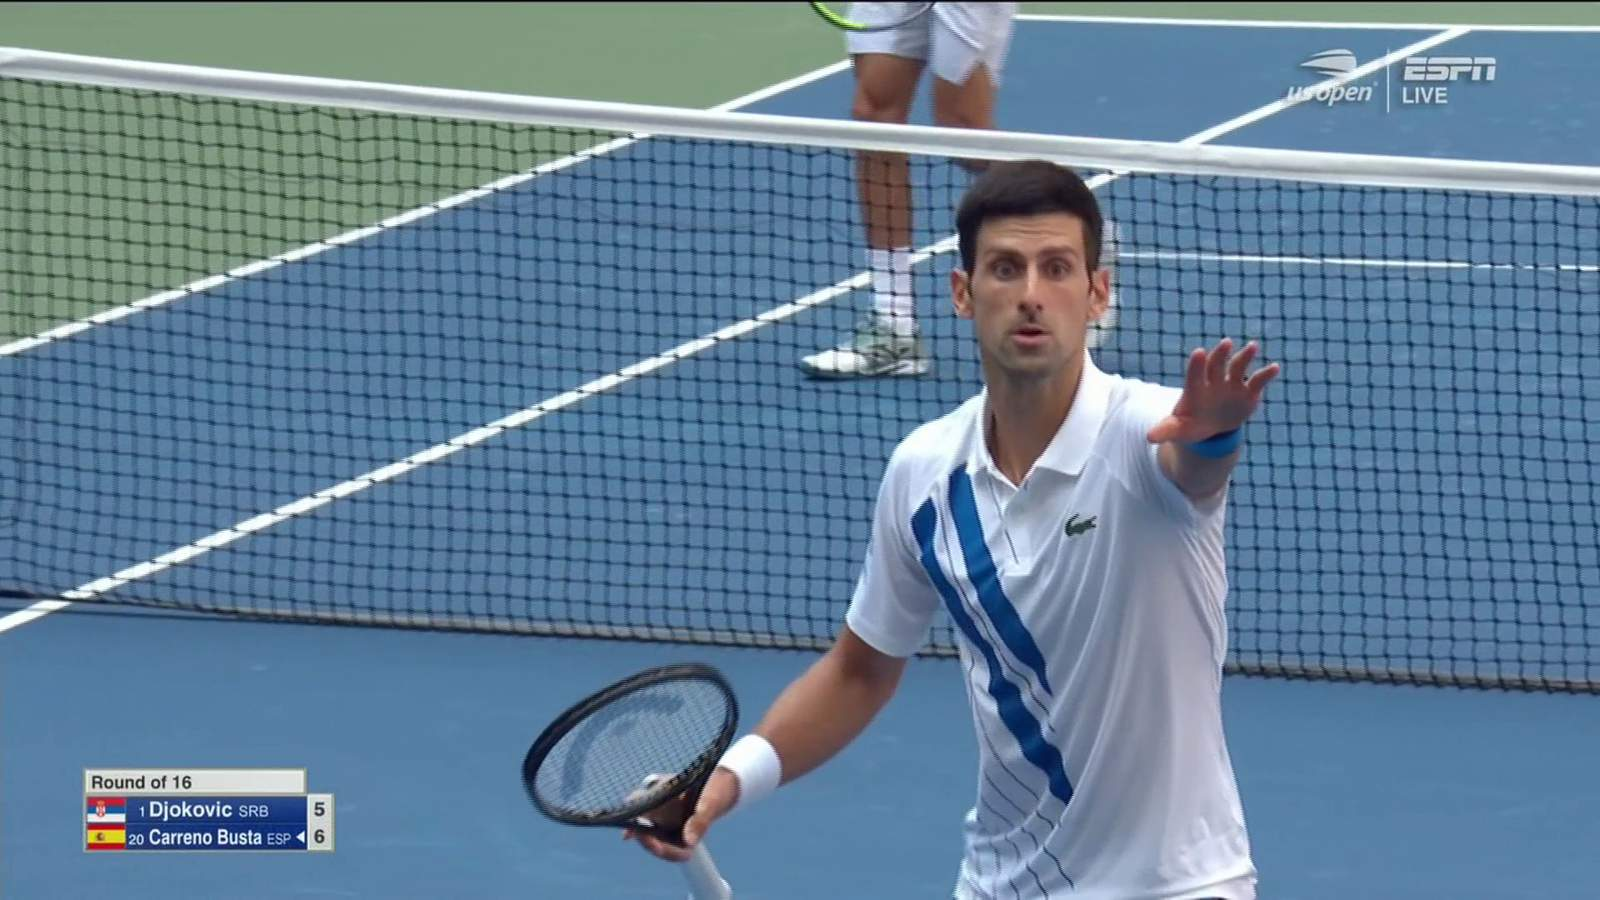 Video Djokovic Out Of Us Open After Hitting Line Judge With Ball